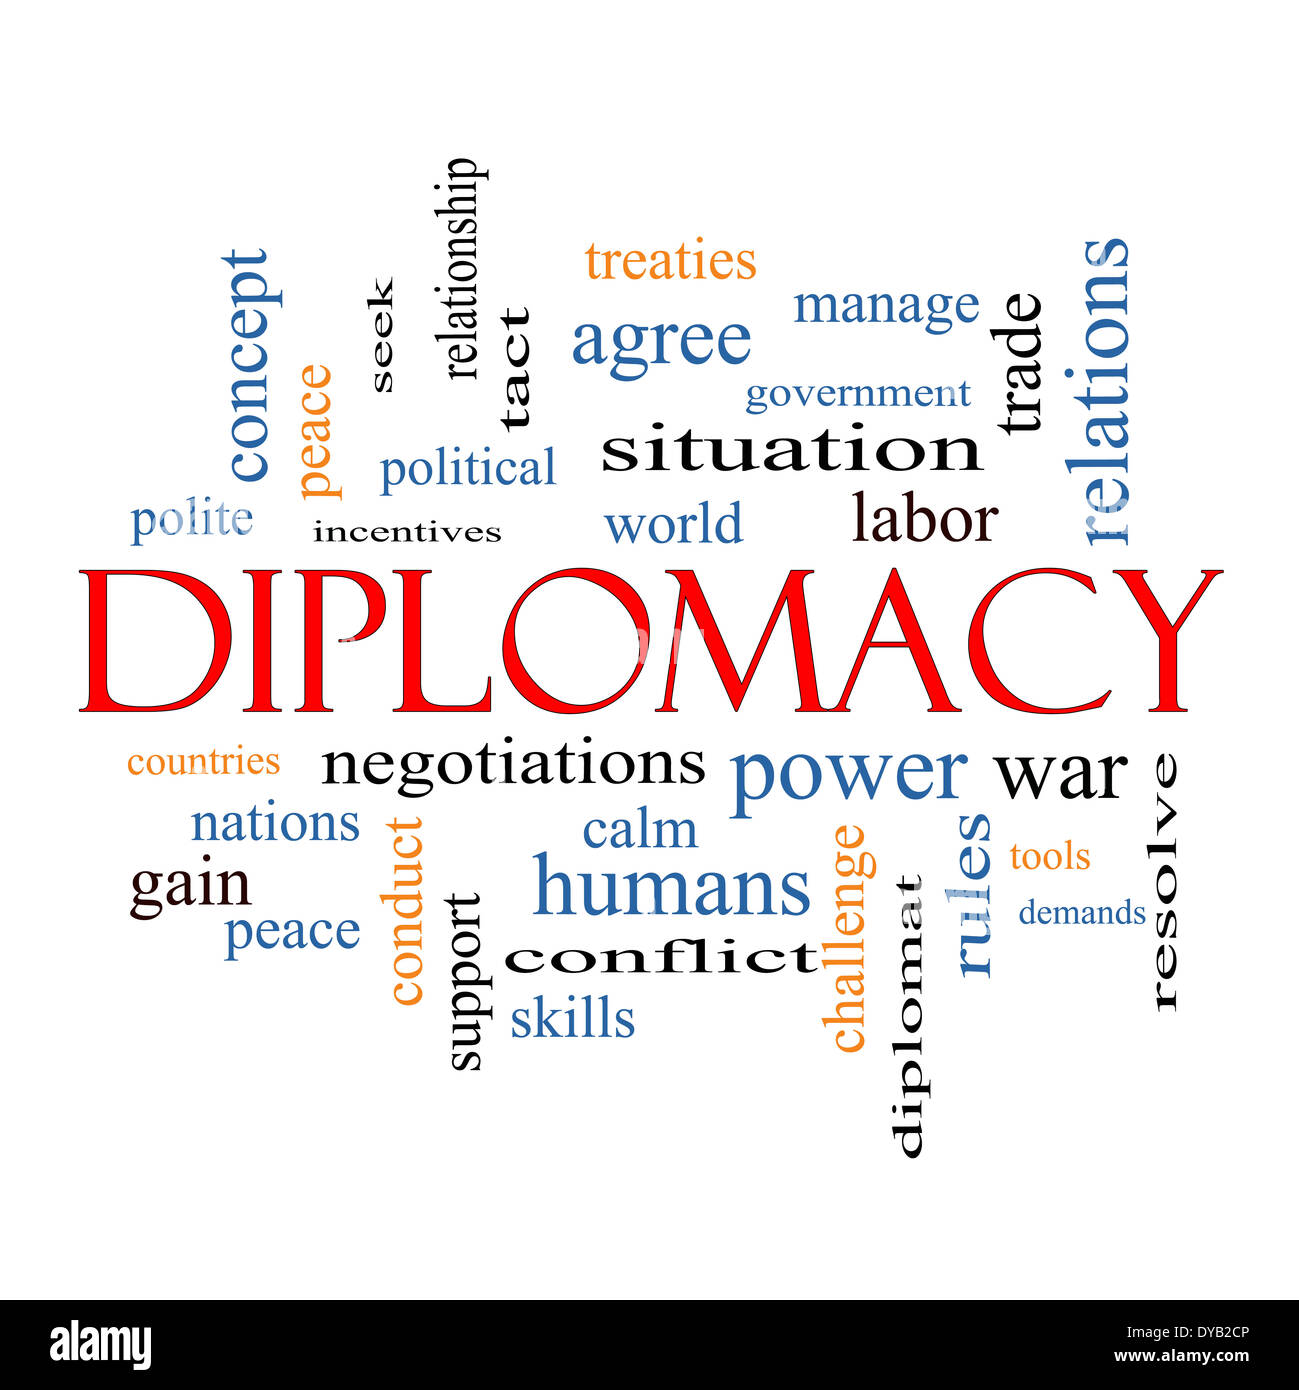 Diplomacy Word Cloud Concept with great terms such as world, peace, negotiations and more. - Stock Image